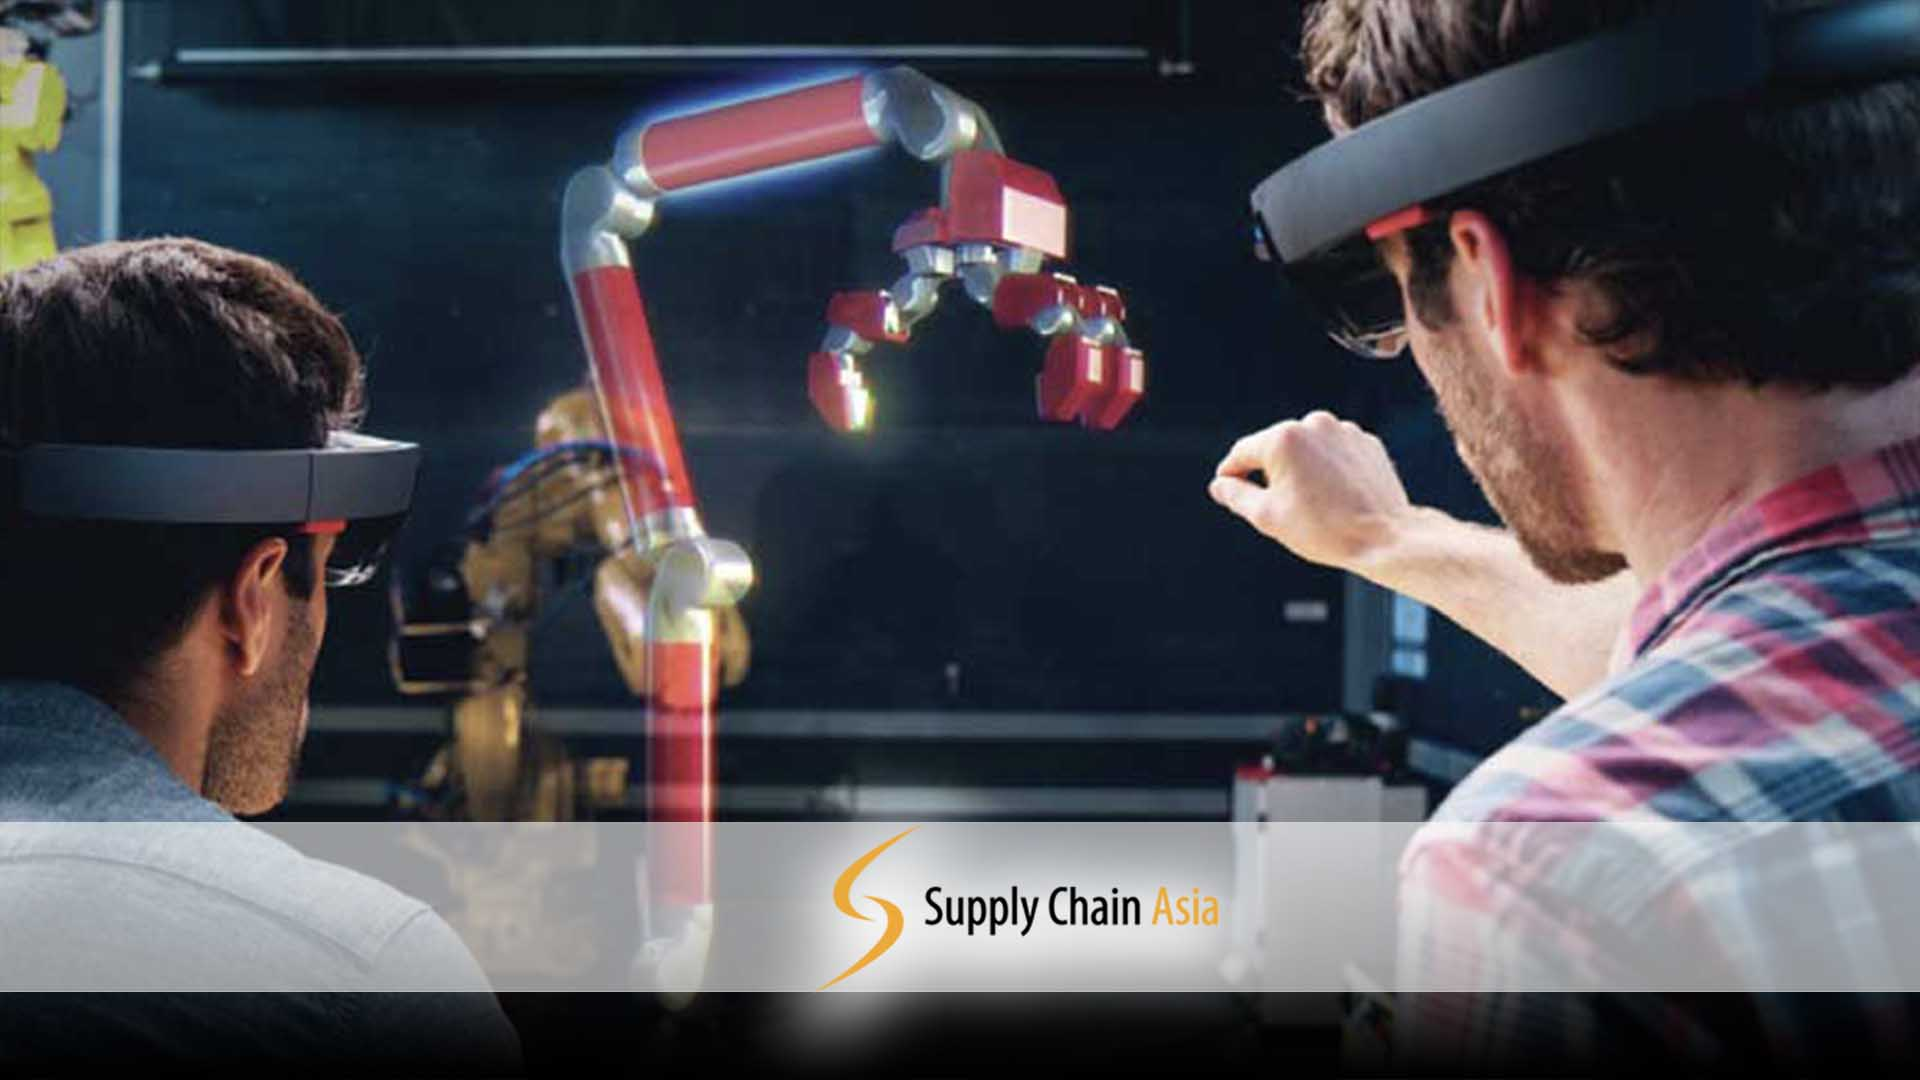 Supply Chain Asia VR MR Training and Showcase